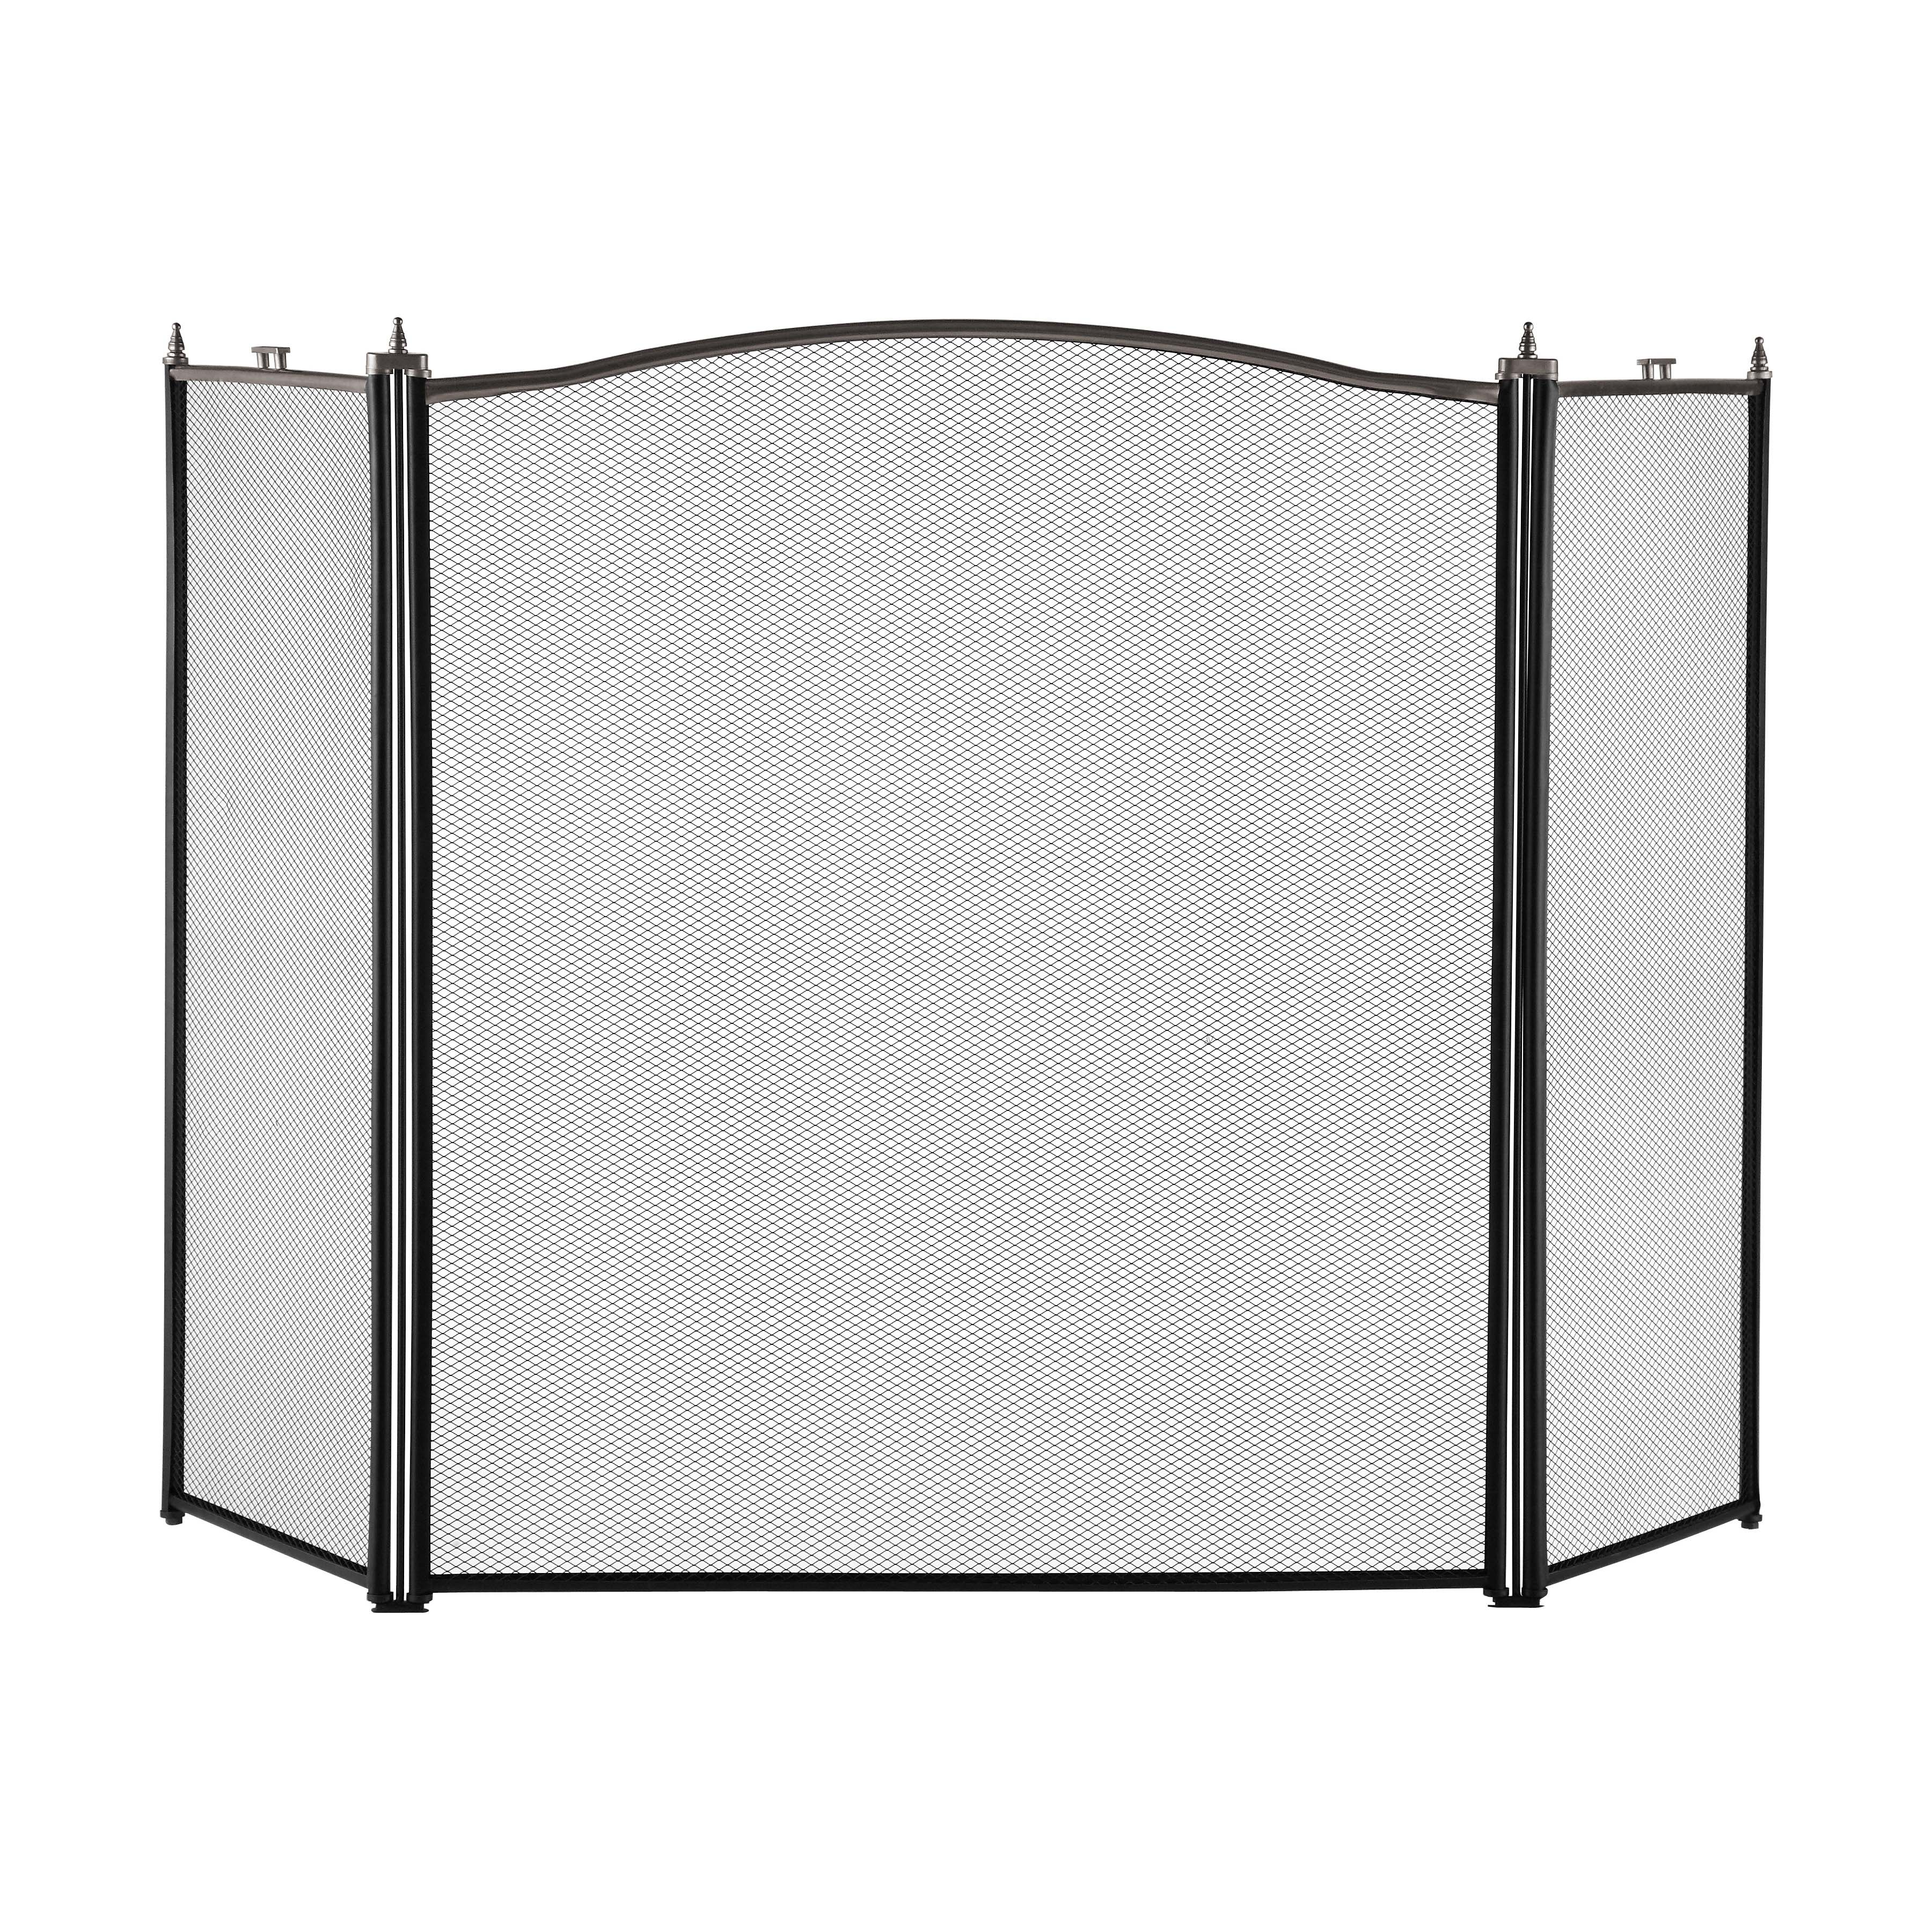 Picture of Simple Spaces C31020ASK3L Fireplace Screen, 52 in W, 30-1/2 in H, Antique Silver